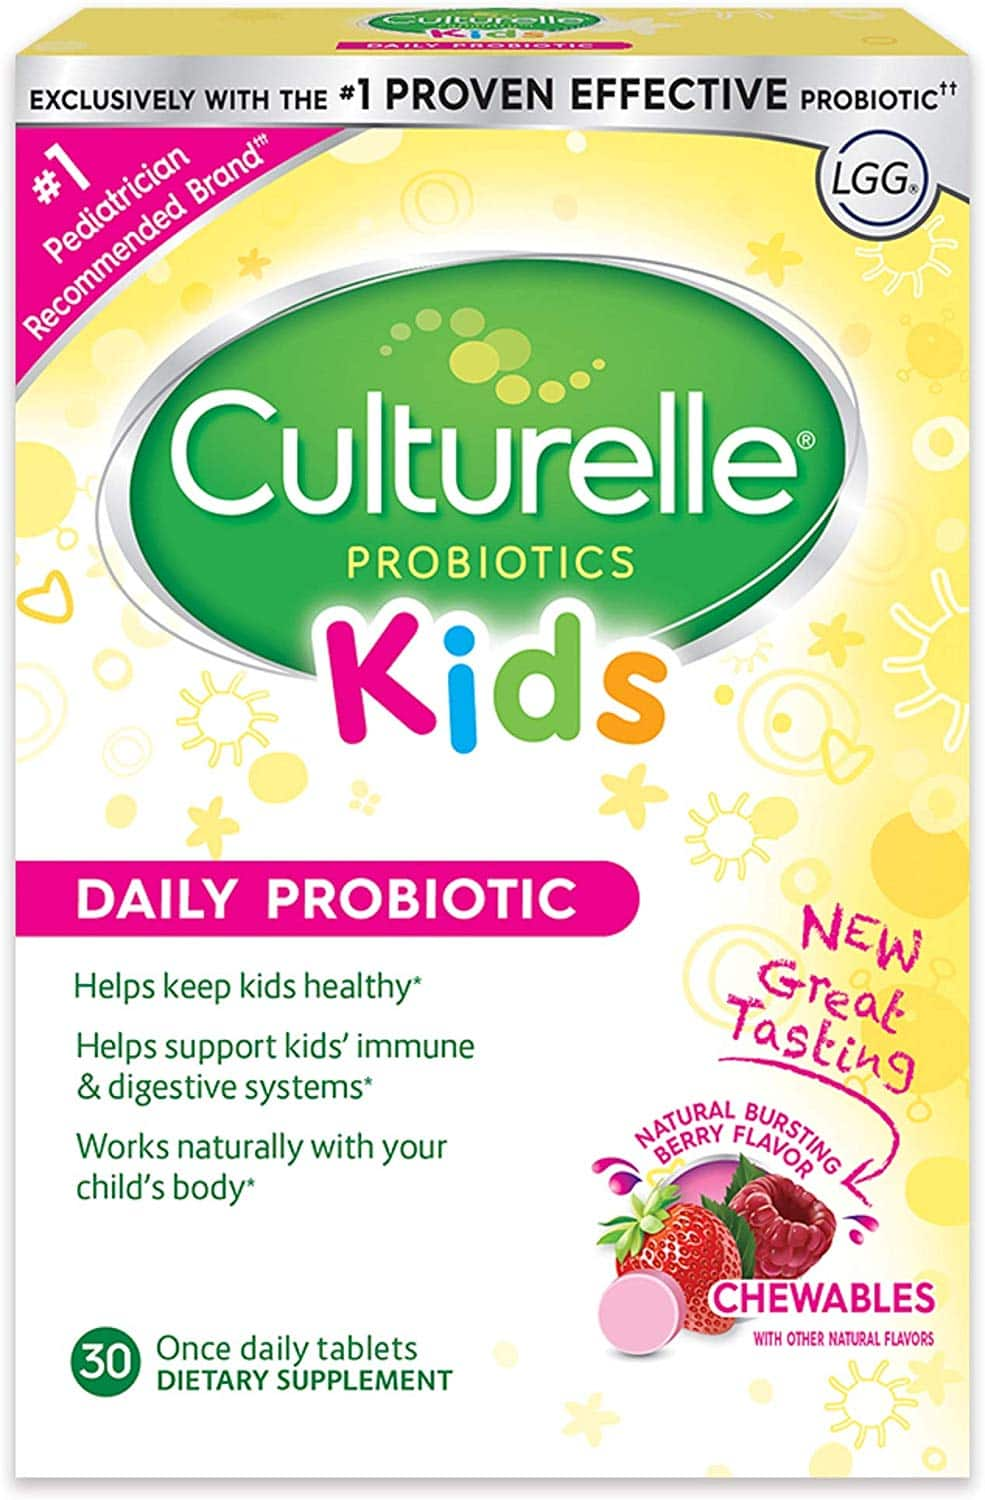 Save $2 on Culturelle Products [AMAZON] $16